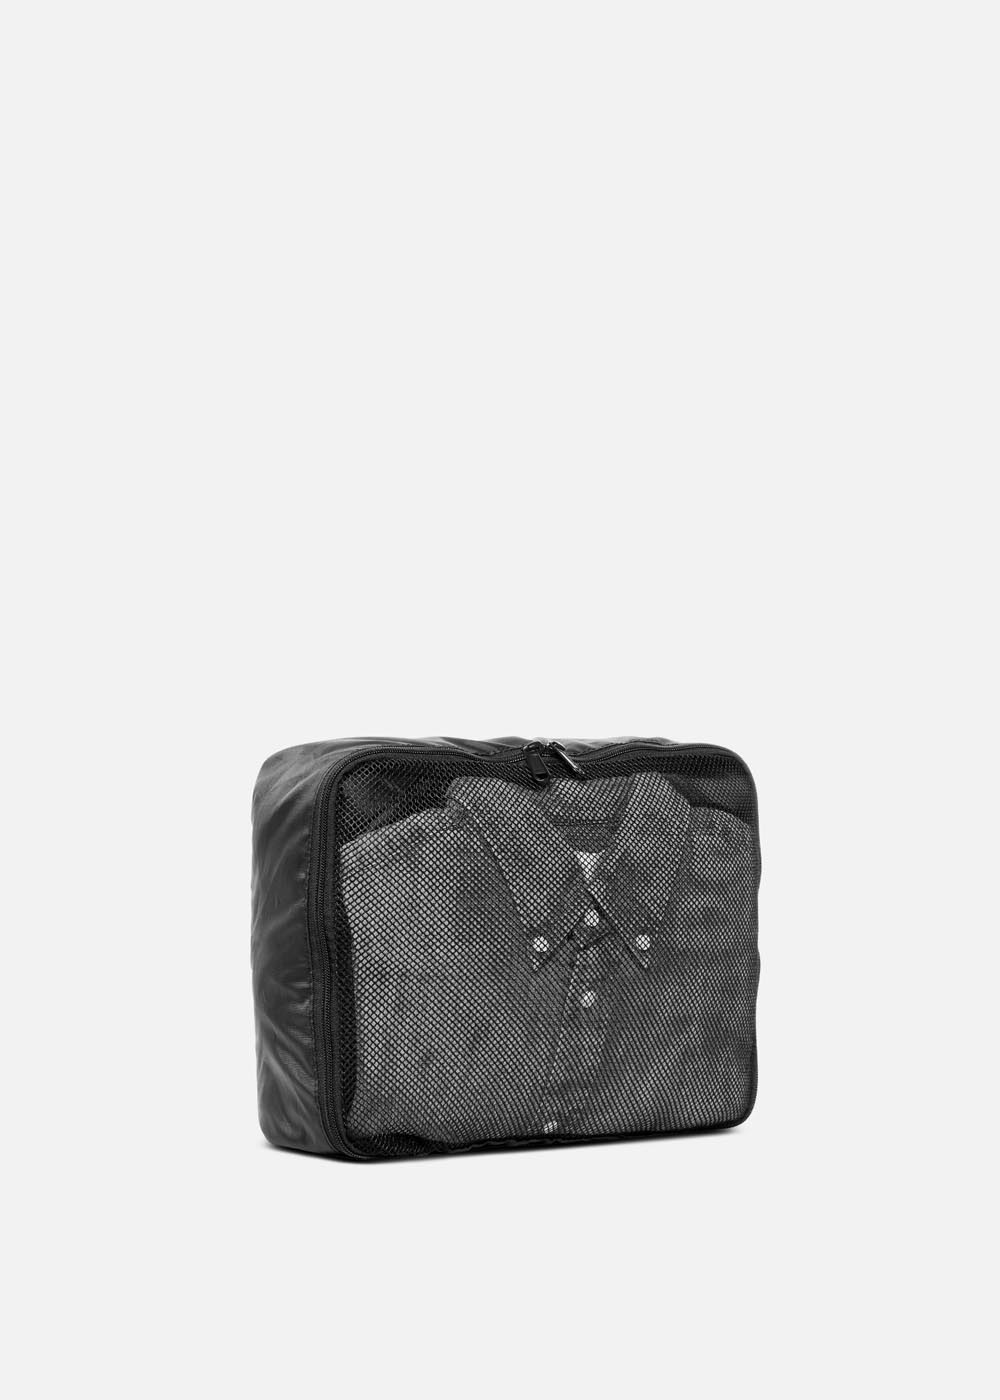 travel_aer_packing_cube_black.JPG